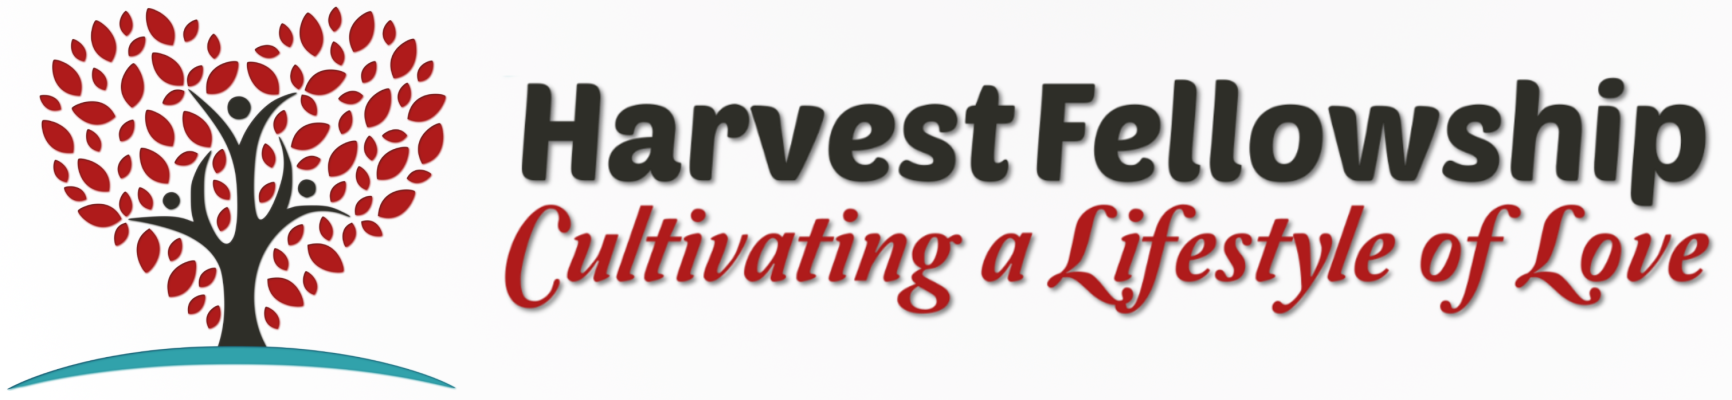 Harvest Fellowship - Stevens, PA